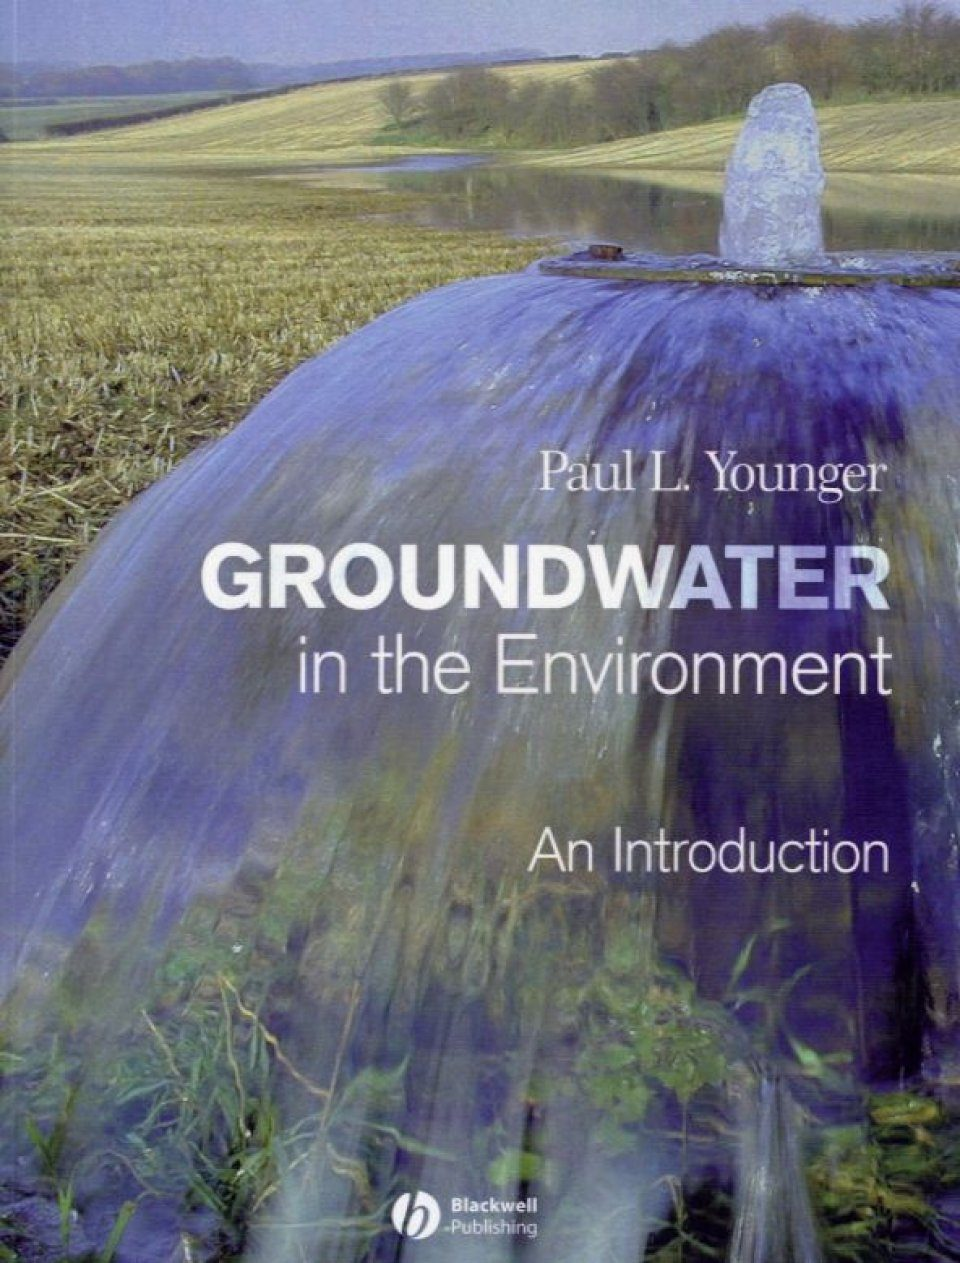 Groundwater in the Environment